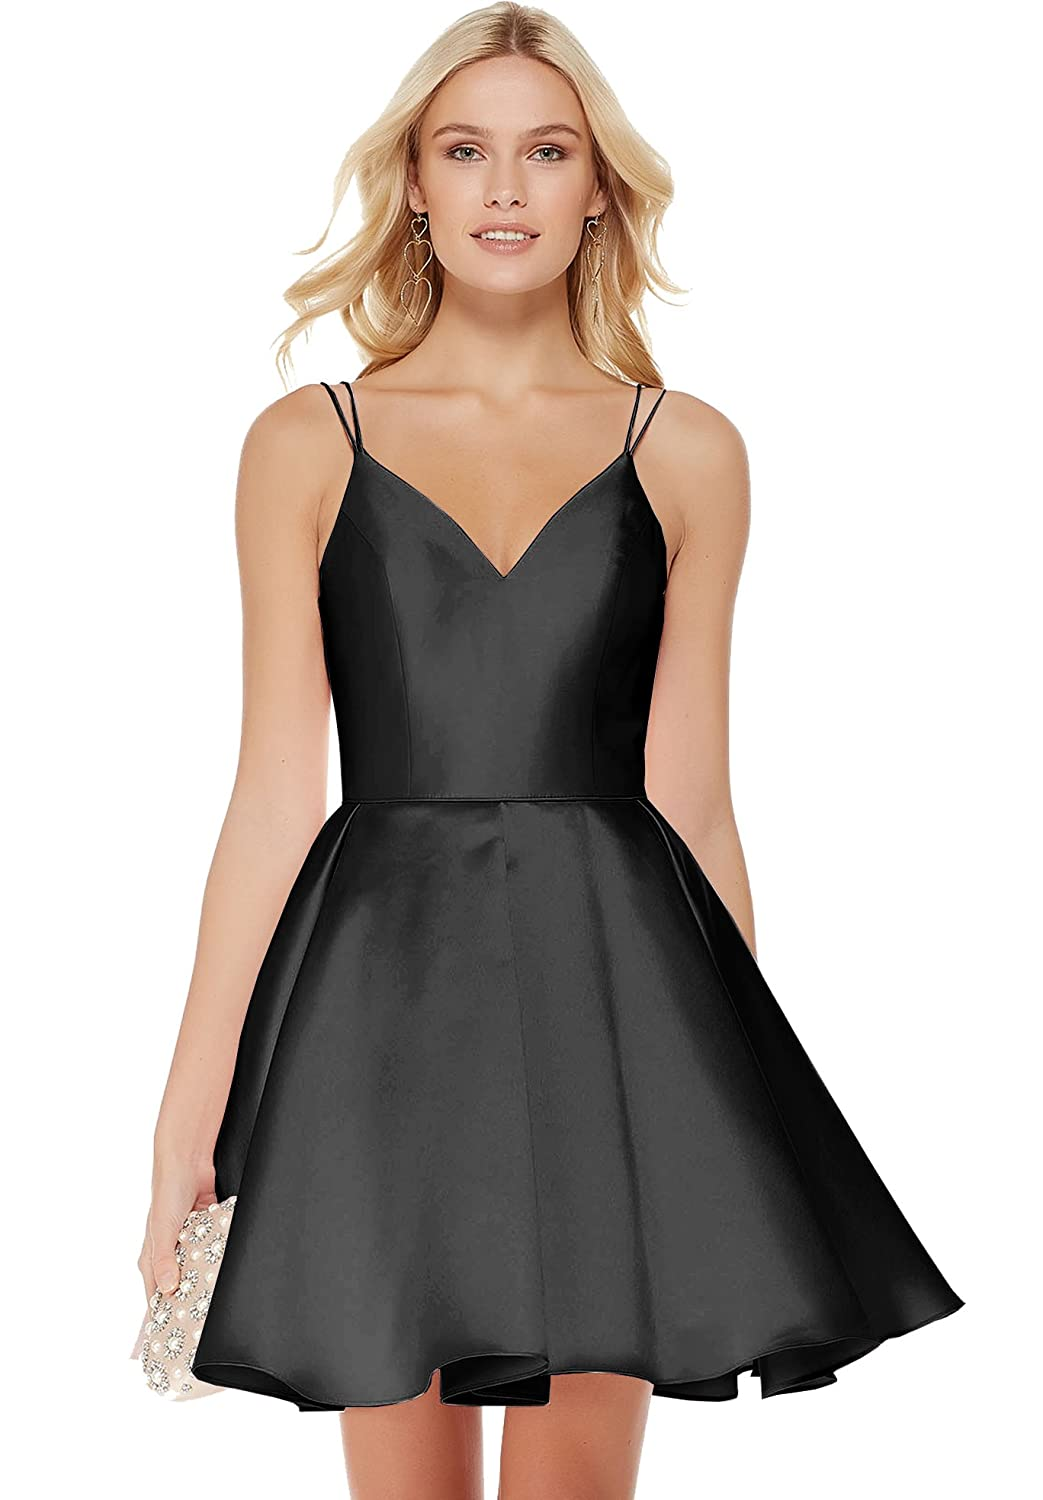 45c140bedb04 Beauty Bridal Junior's V Neck Homecoming Dress Satin Prom Dresses Short  2019 J91 at Amazon Women's Clothing store: